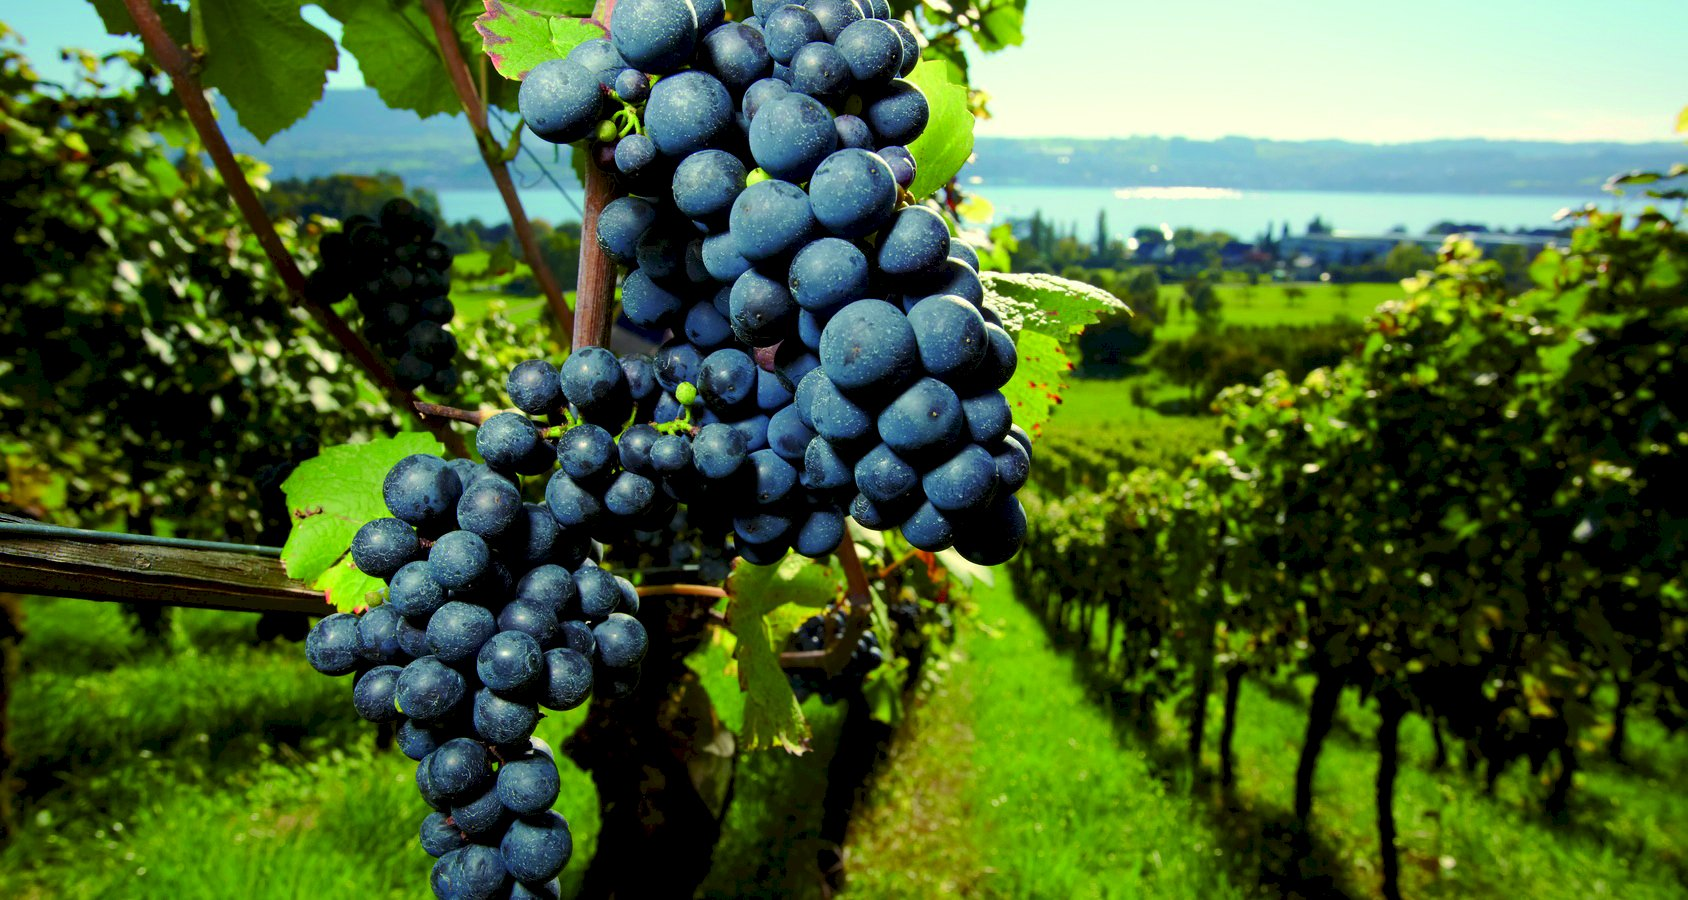 Ophorus Tours - Medoc Wine Tour Small Group Private Full Day Shore Excursion From Bordeaux